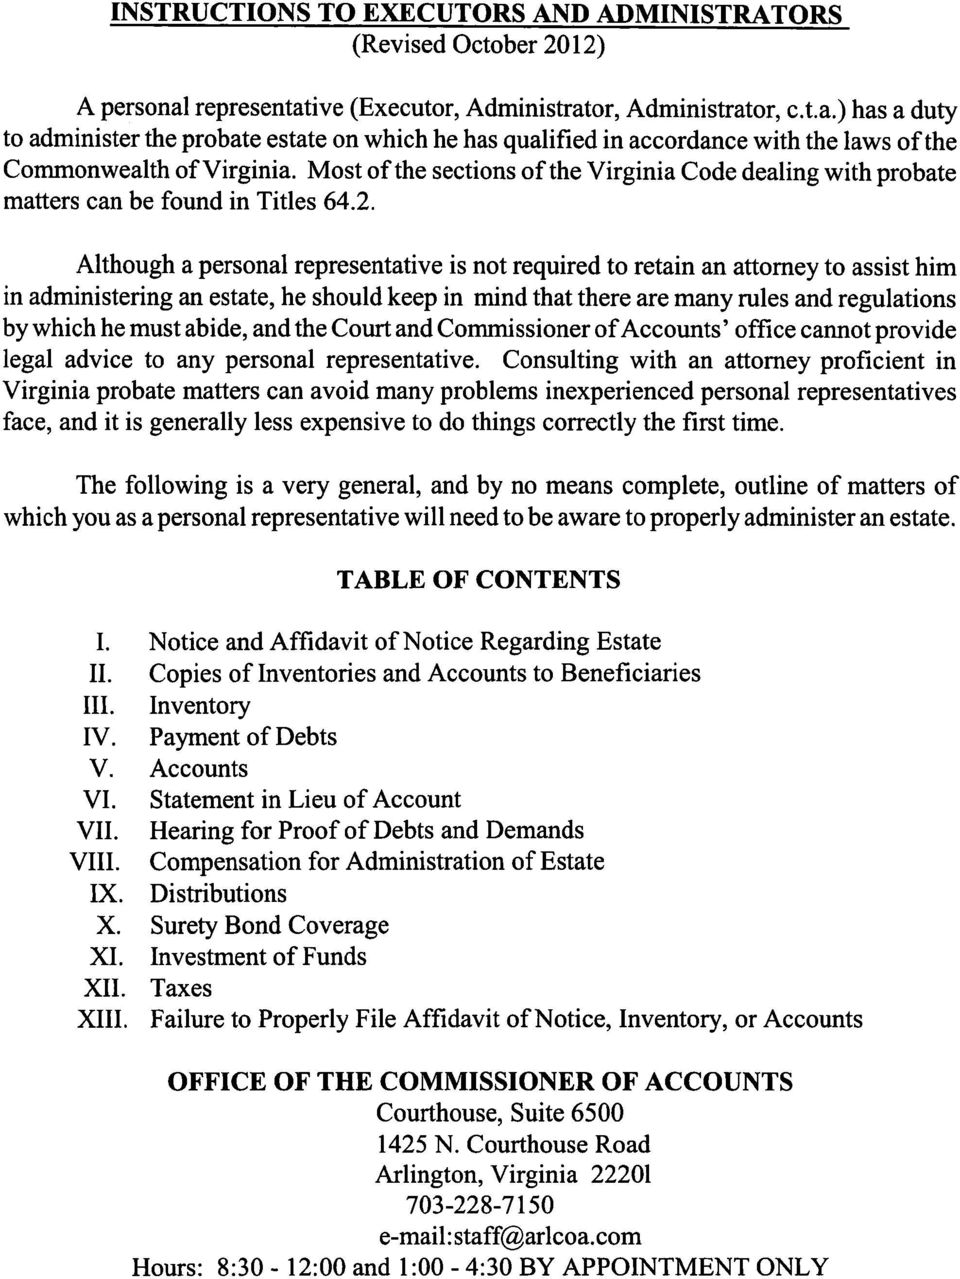 Most of the sections of the Virginia Code dealing with probate matters can be found in Titles 64.2.